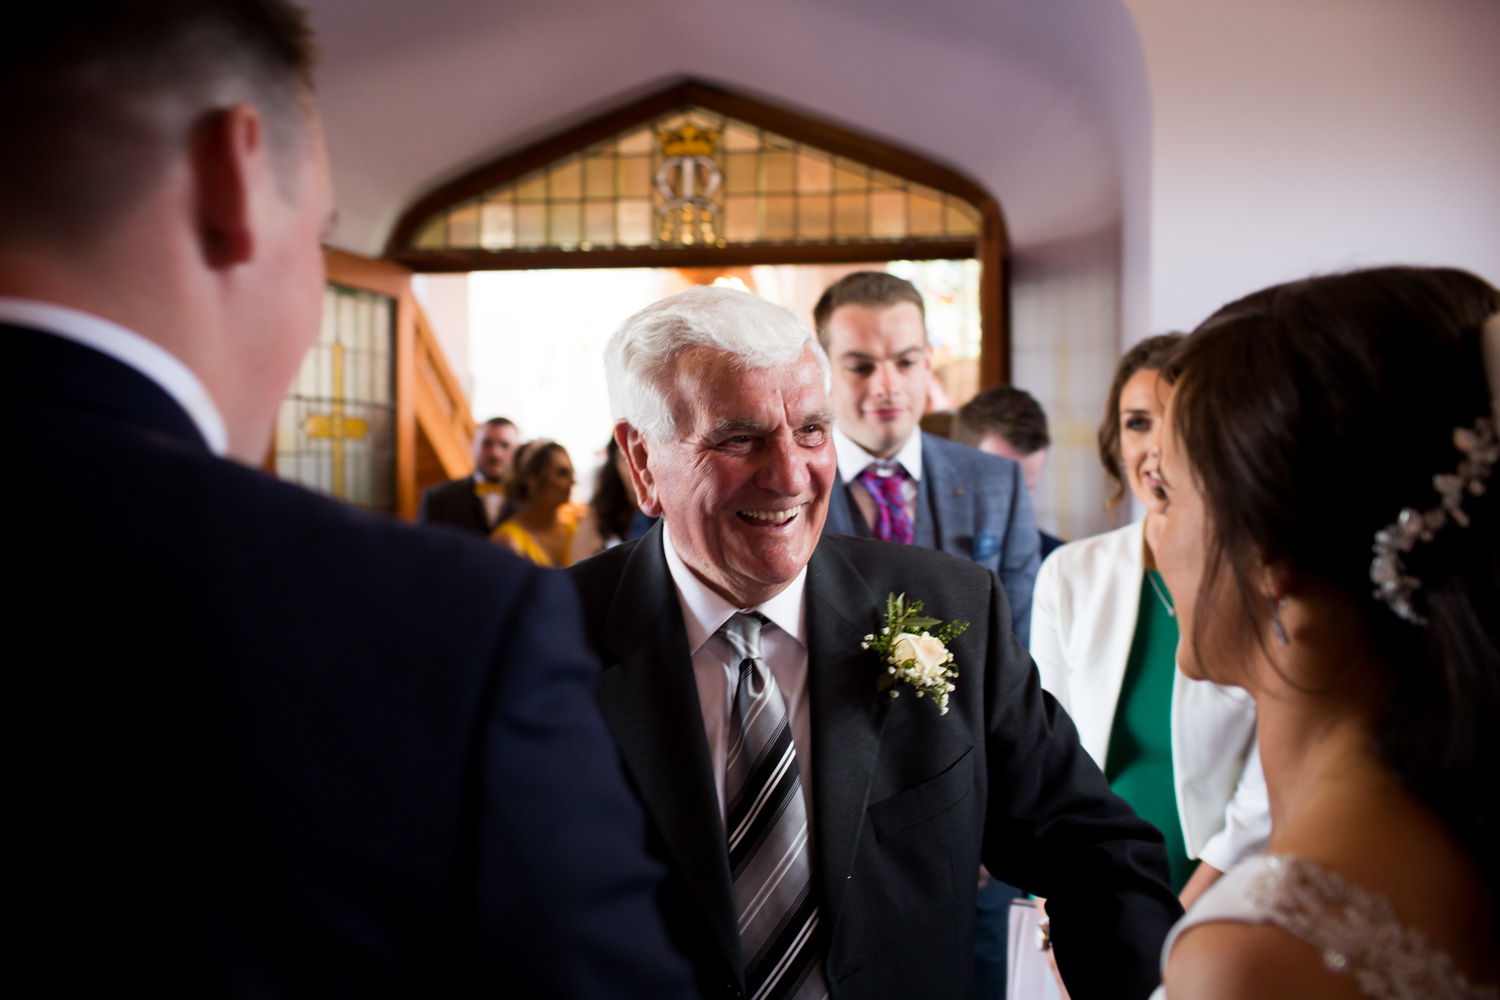 Mark_Barnes_Northern_Ireland_wedding_photographer_redcastle_hotel_Donegal_Wedding_photography_Donegal_wedding_photographer-25.jpg